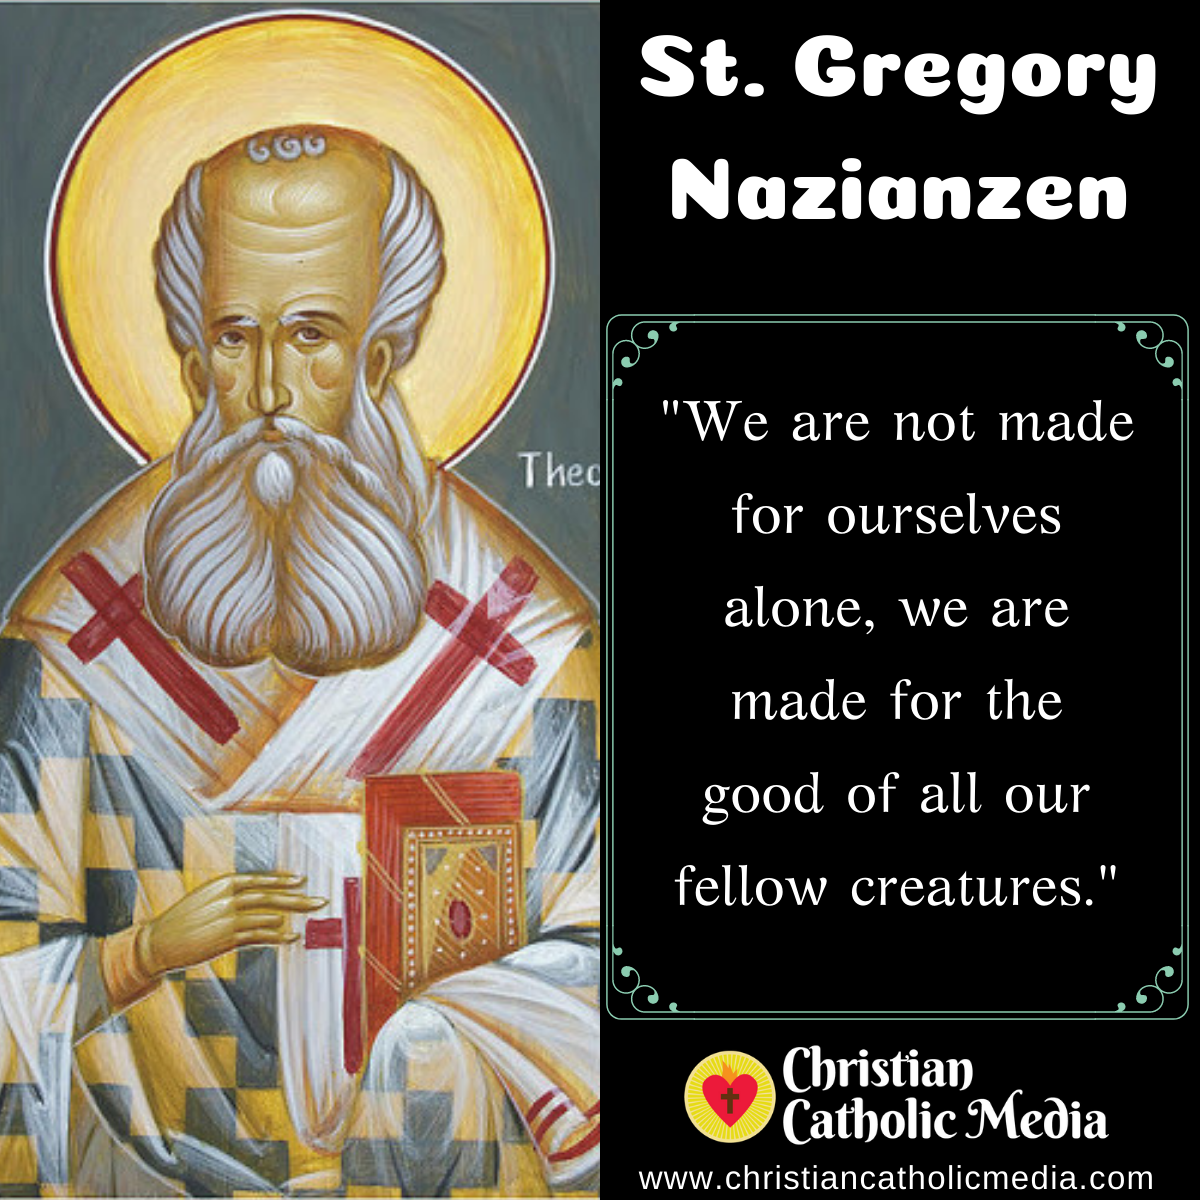 St. Gregory Nazianzen - Thursday January 14, 2021